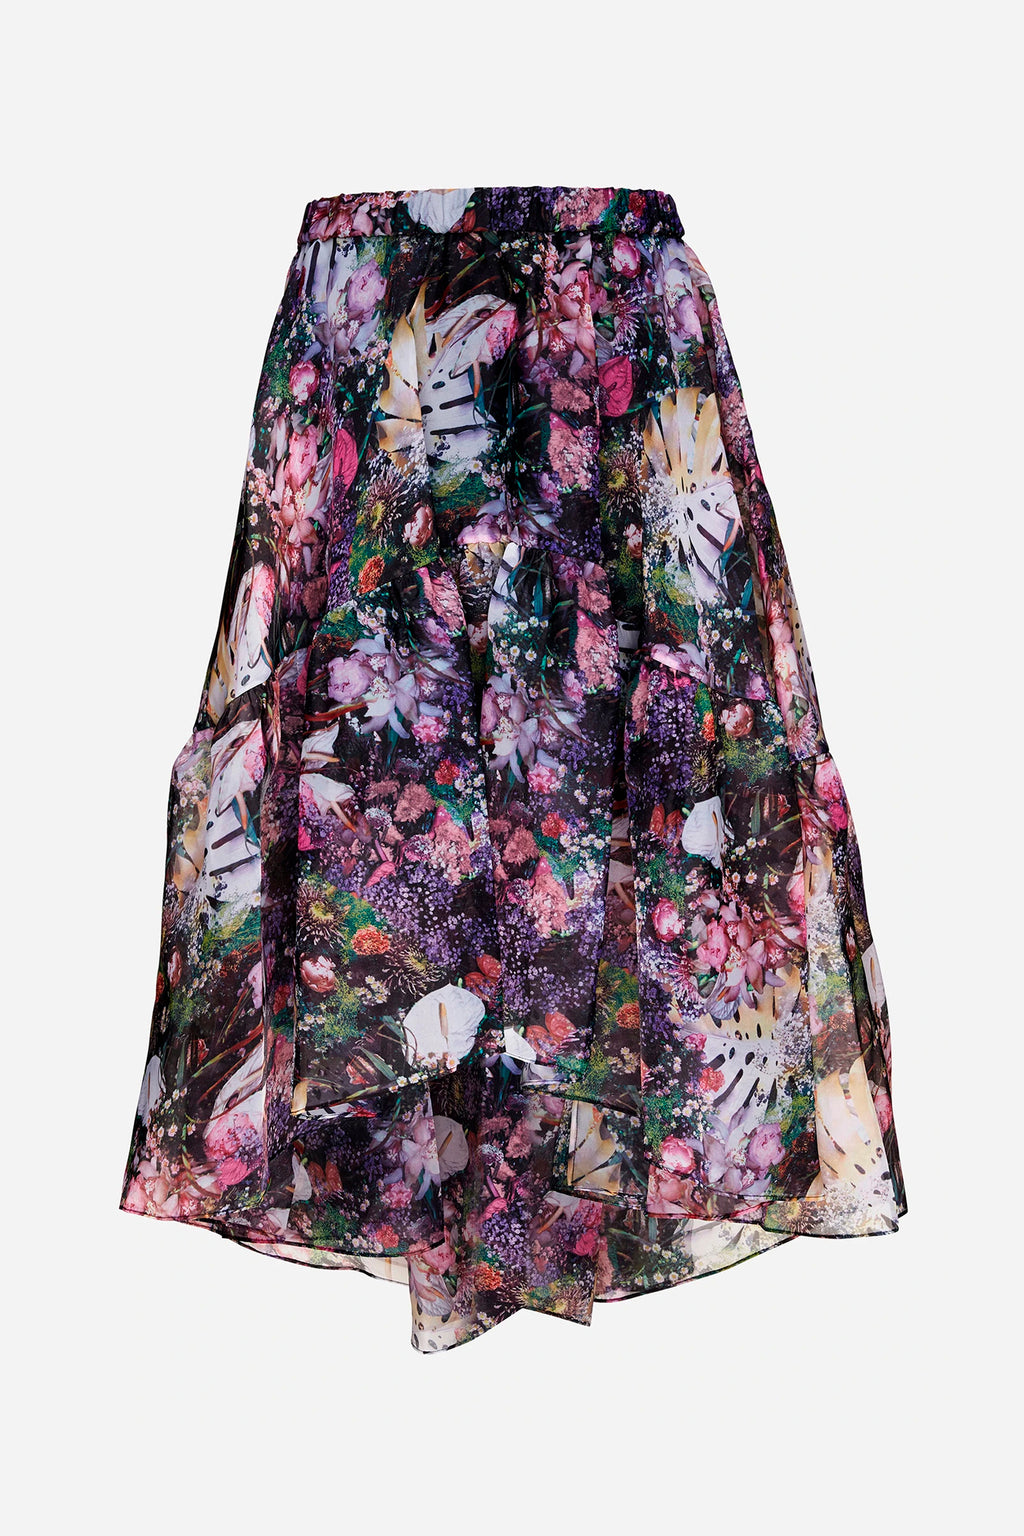 MONTMARTRE FLOWER TIER SKIRT